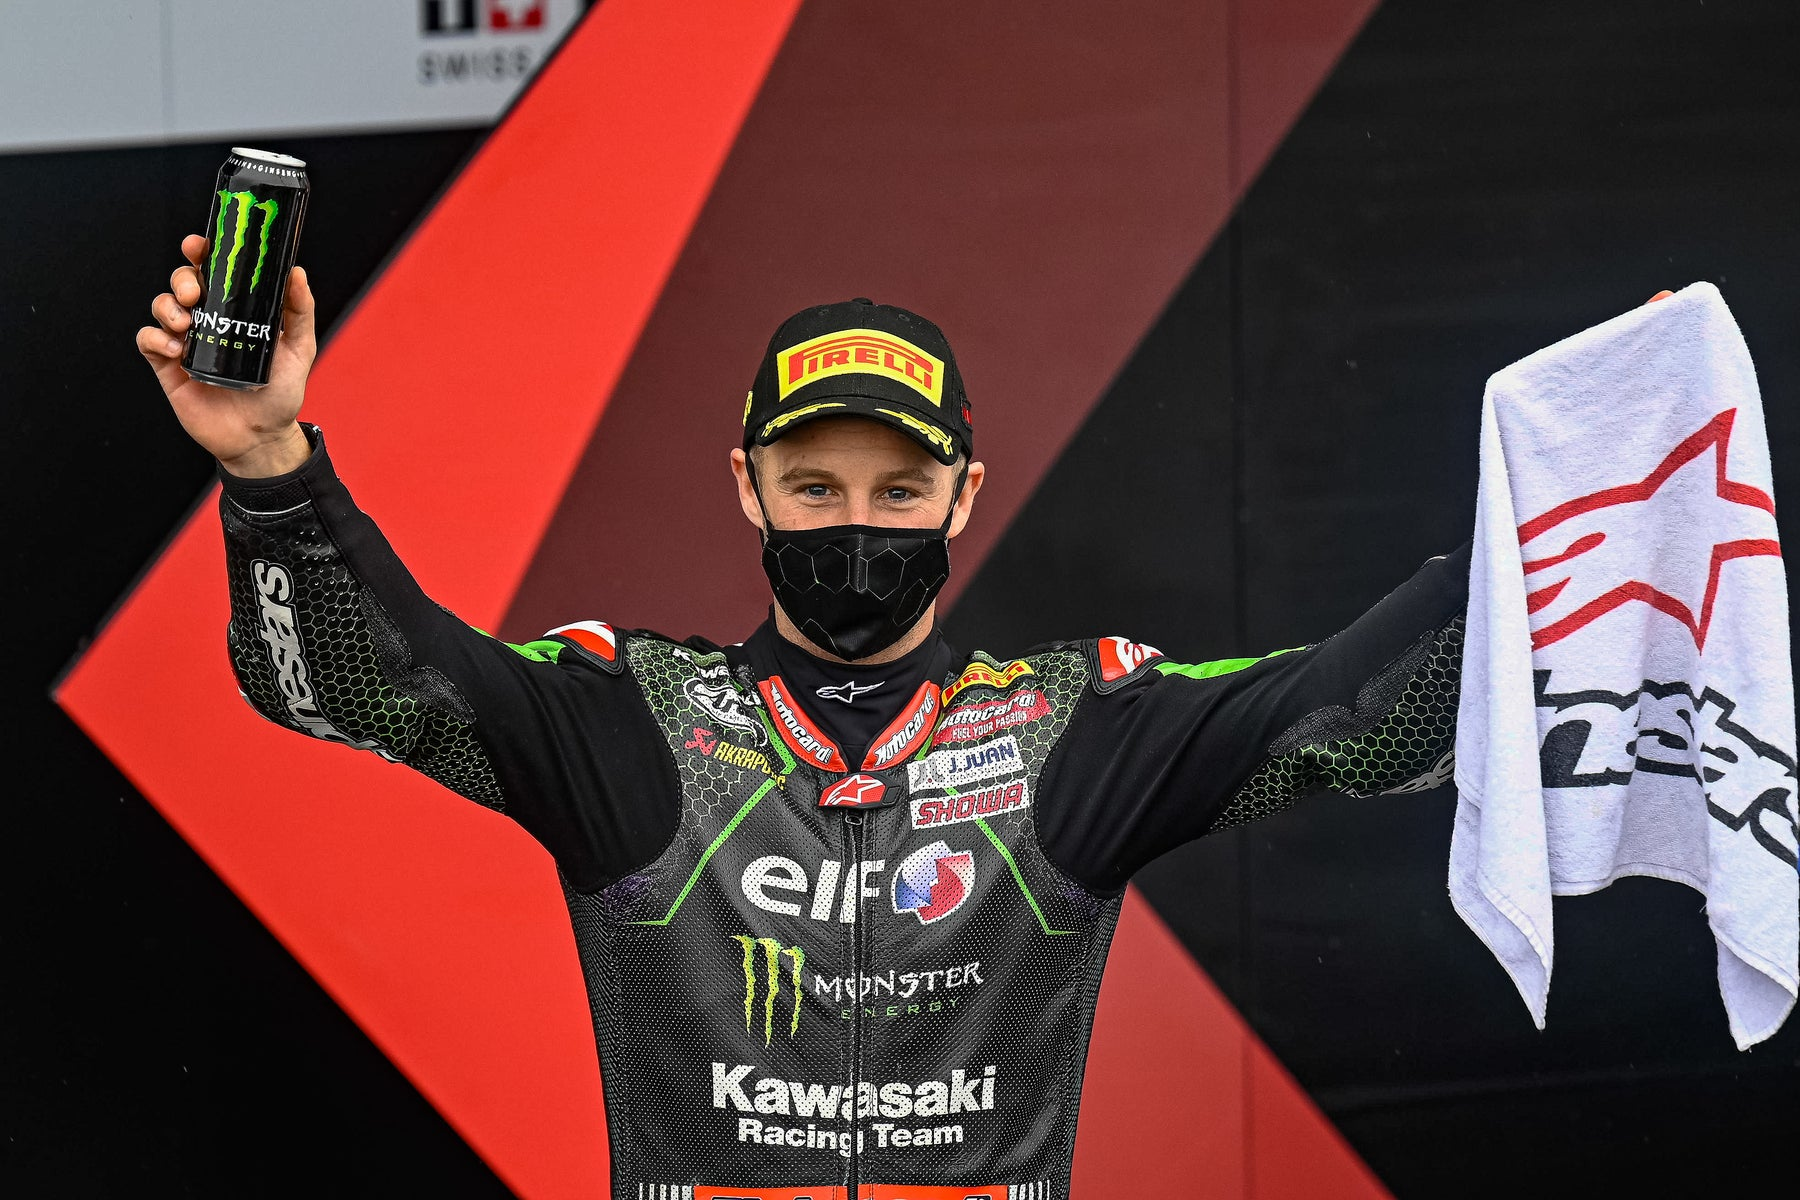 JONATHAN REA SHINES IN THE WET AT MAGNY COURS TO WIN WSBK SUPERPOLE RACE; MICHAEL VAN DER MARK THIRD